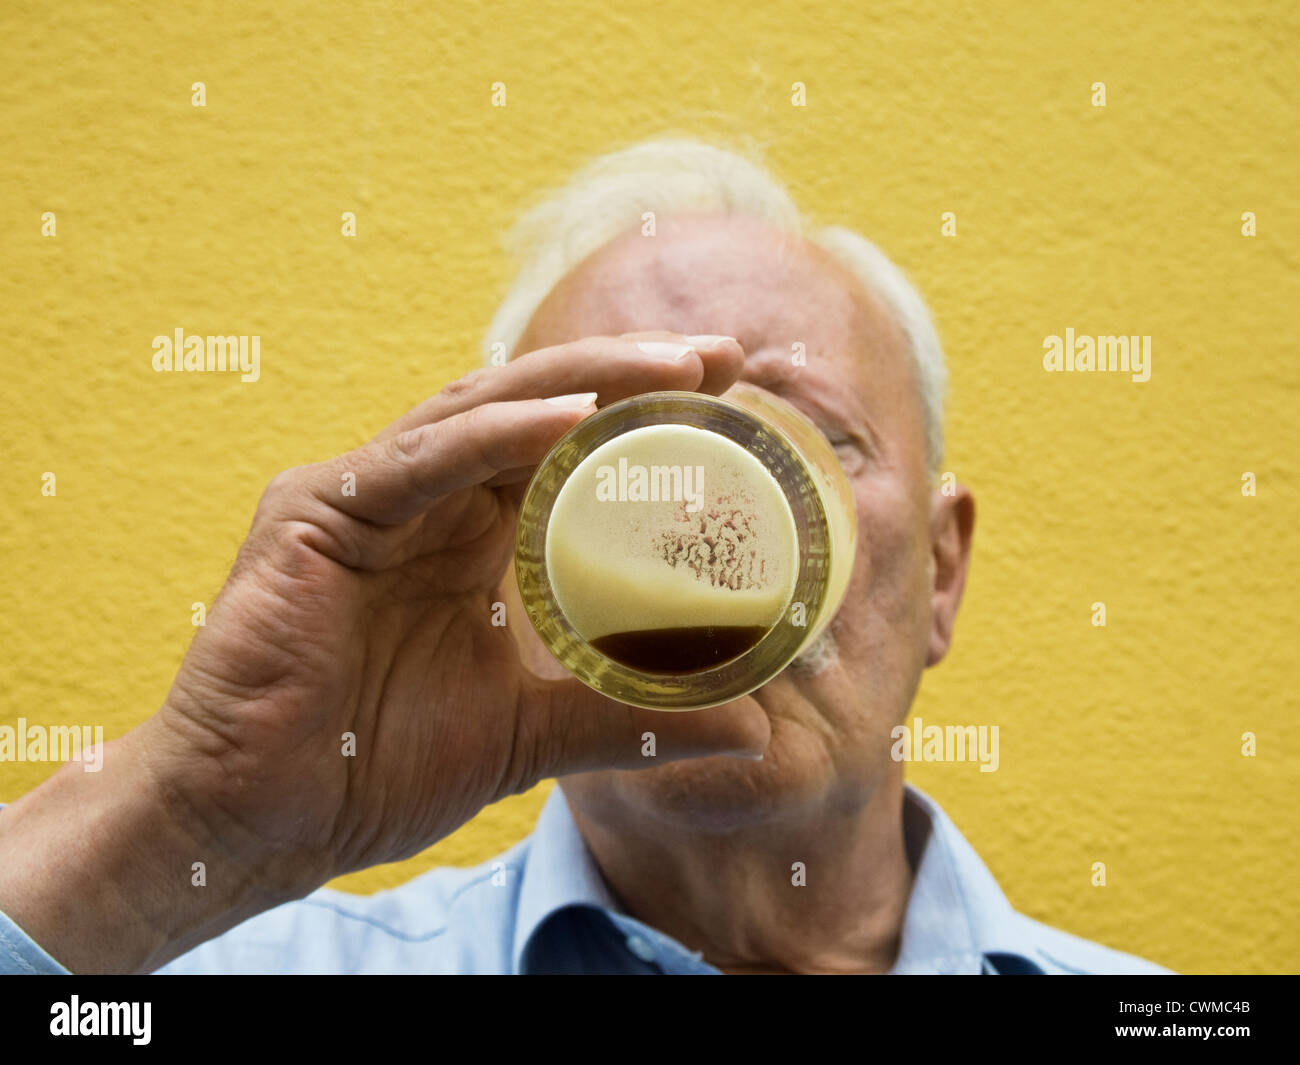 A man drinking the last dregs of a pint of Guinness beer - Stock Image